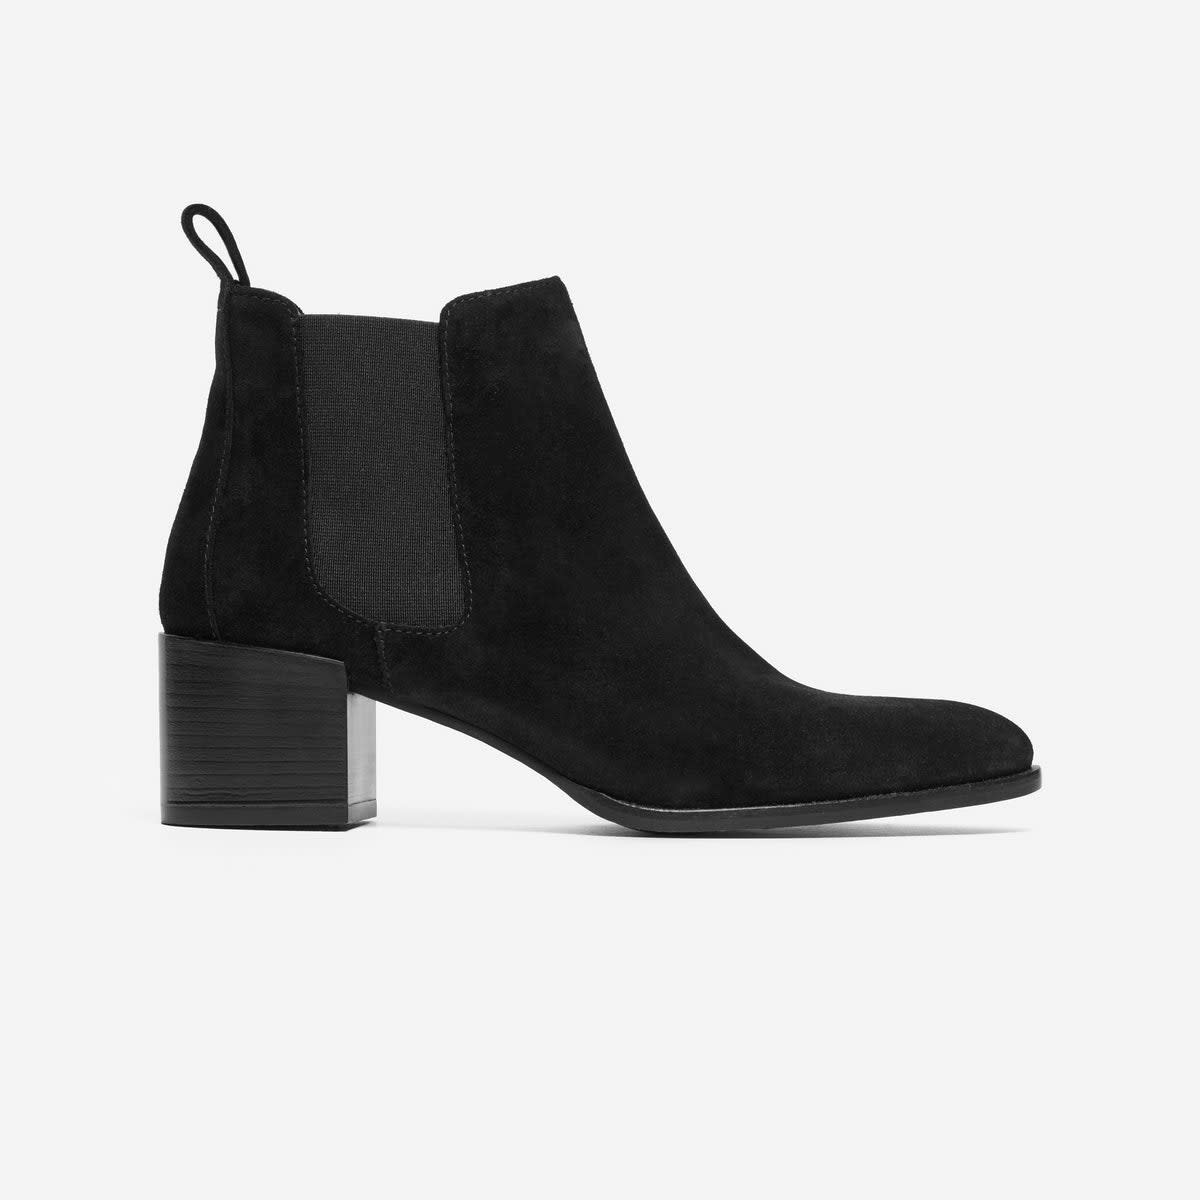 Everlane The Heel Boot in Black Suede, $225, available at Everlane.